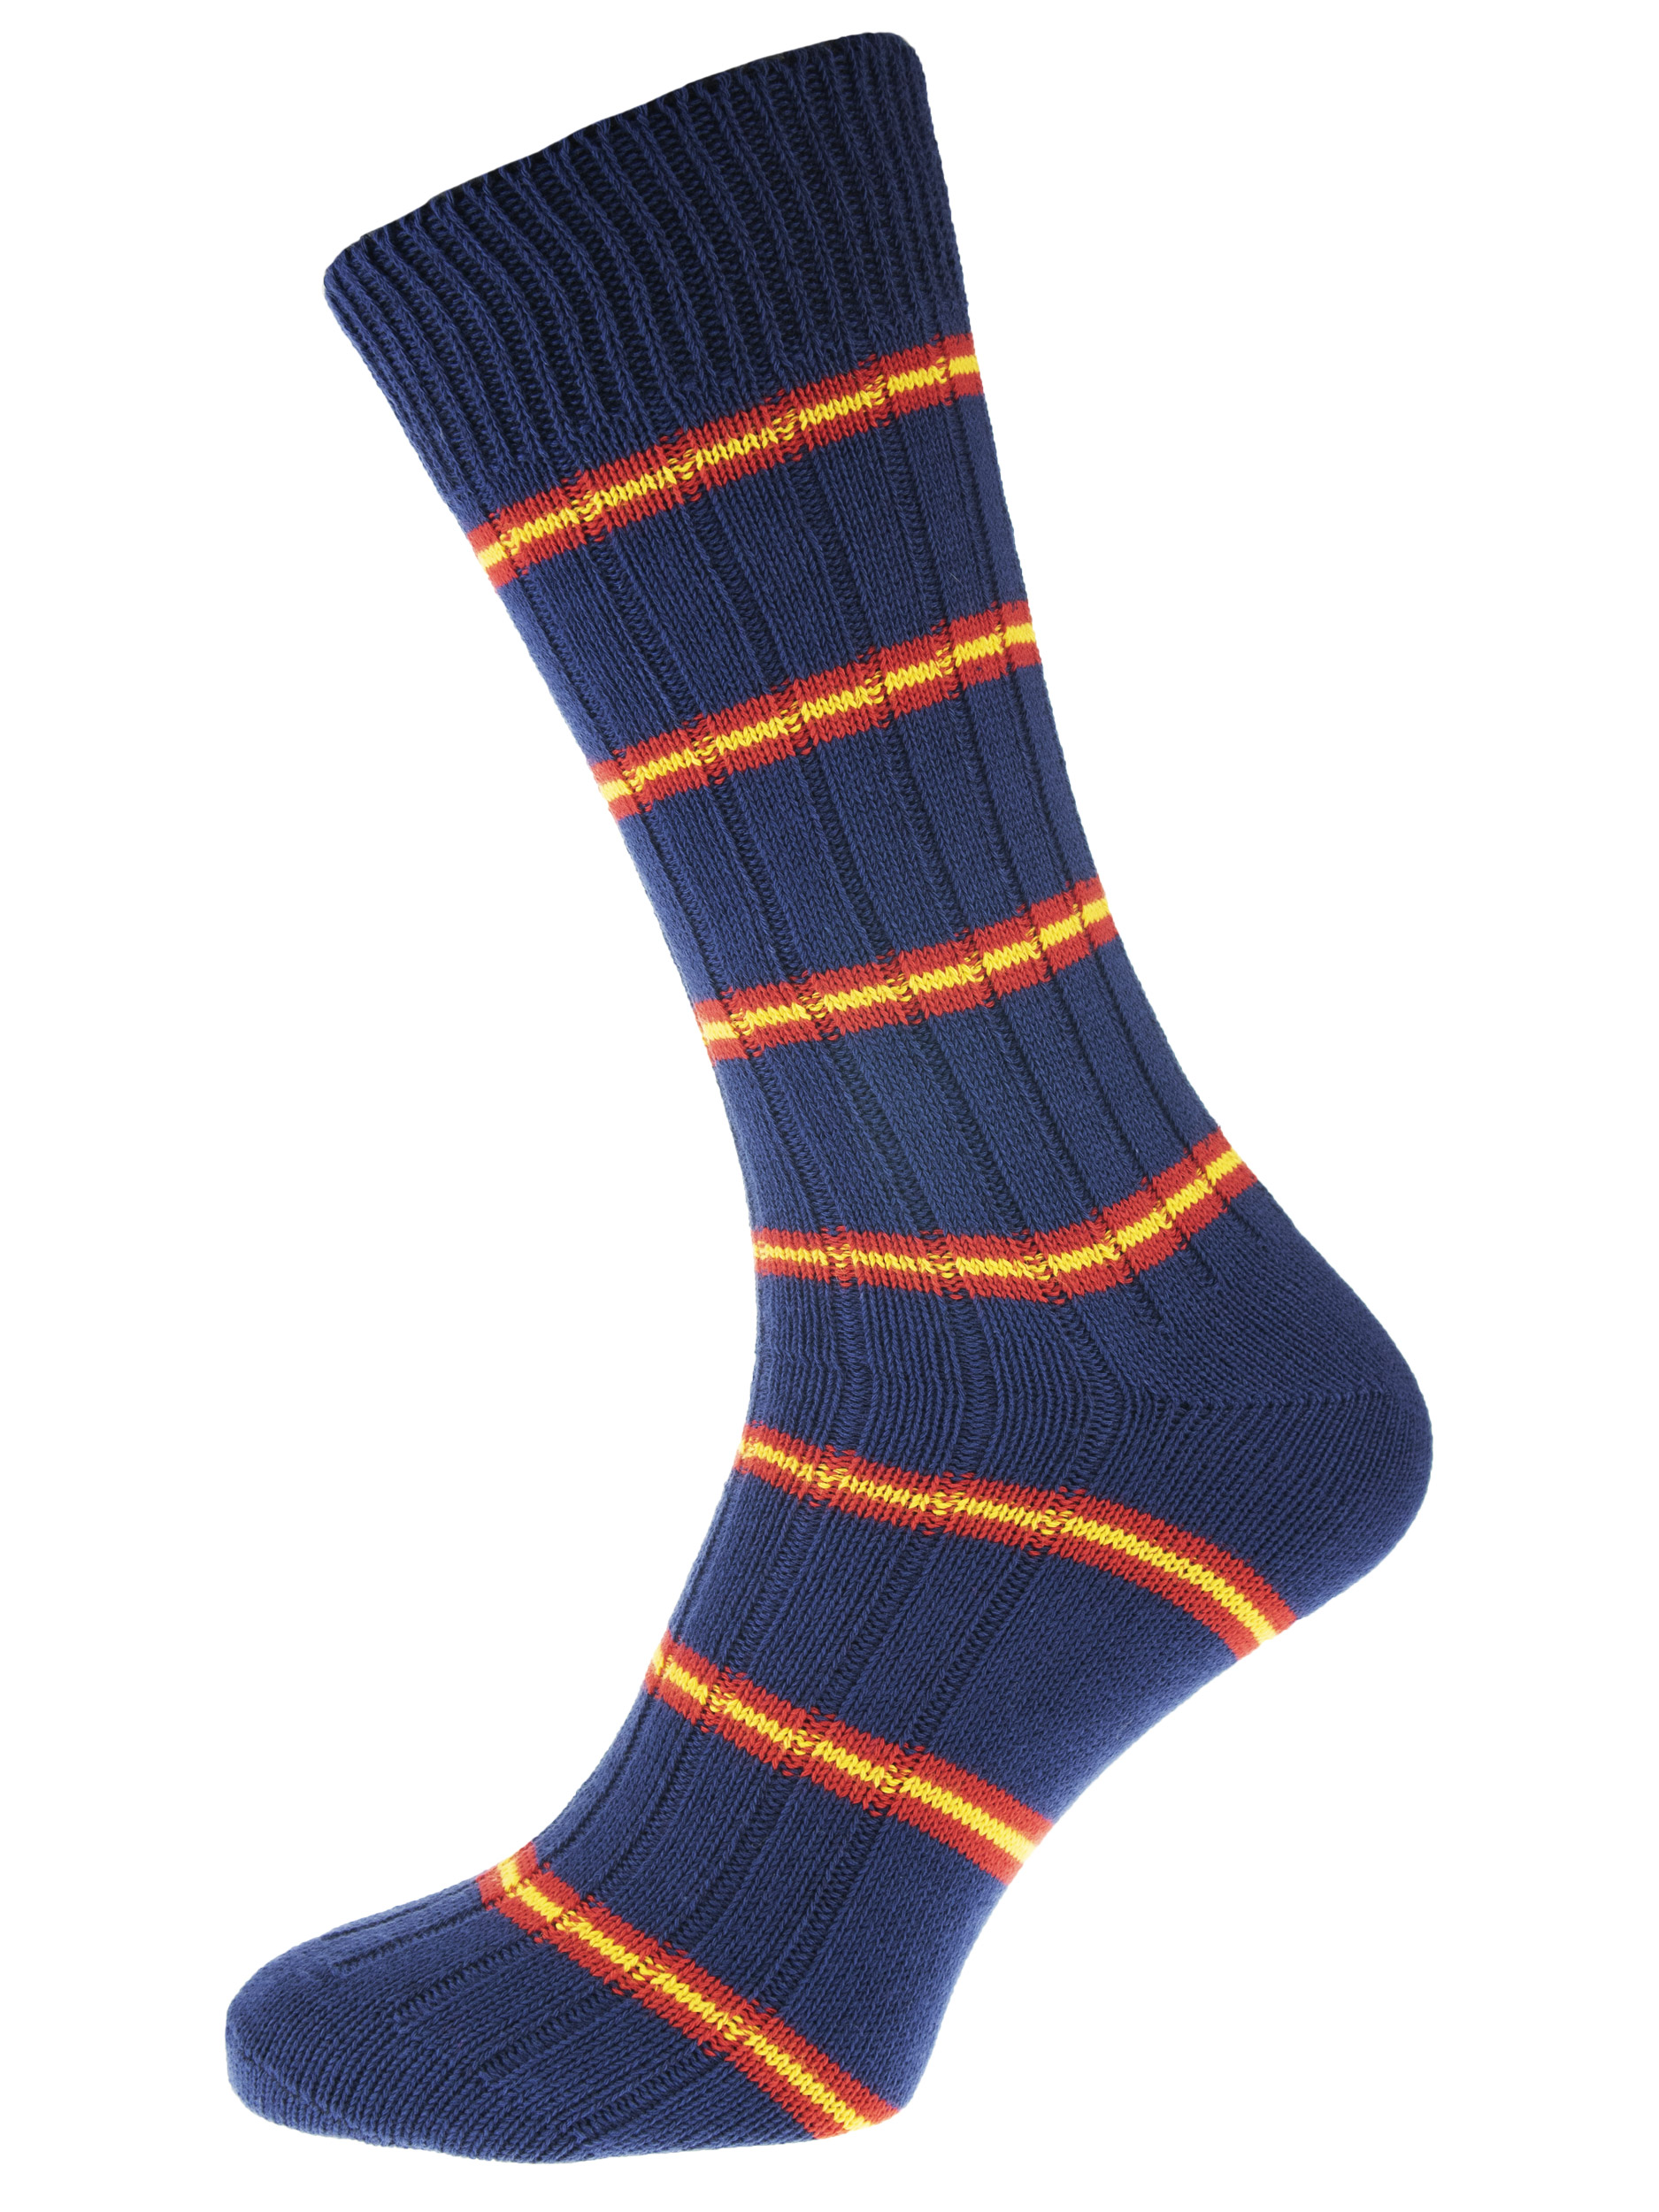 leisure lifestyle cotton sock navy